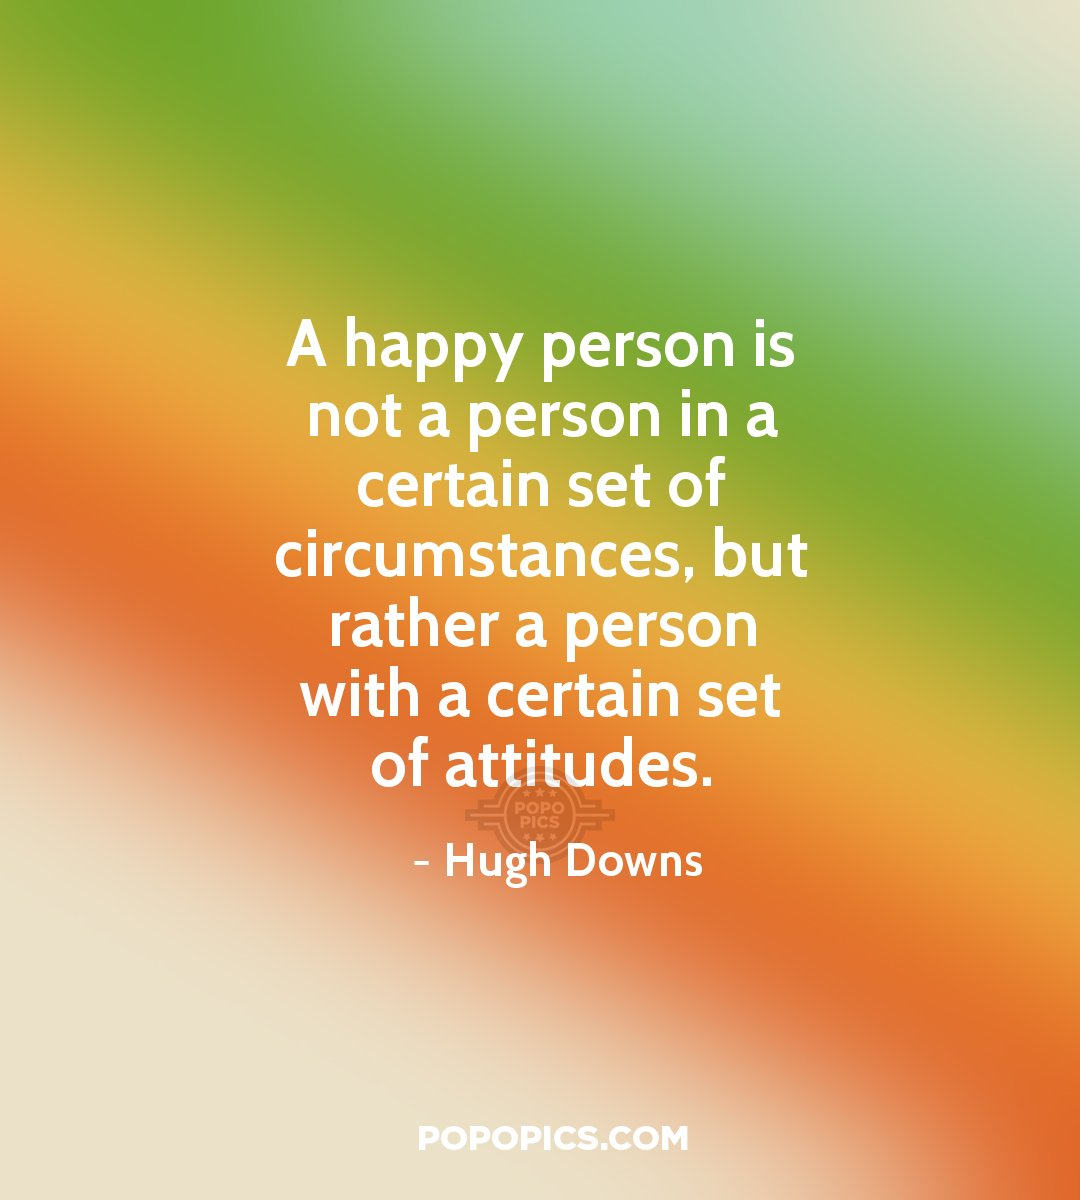 Quotes About Happy Person A Happy Person Is Not A Person In A Certain Set Quotes.